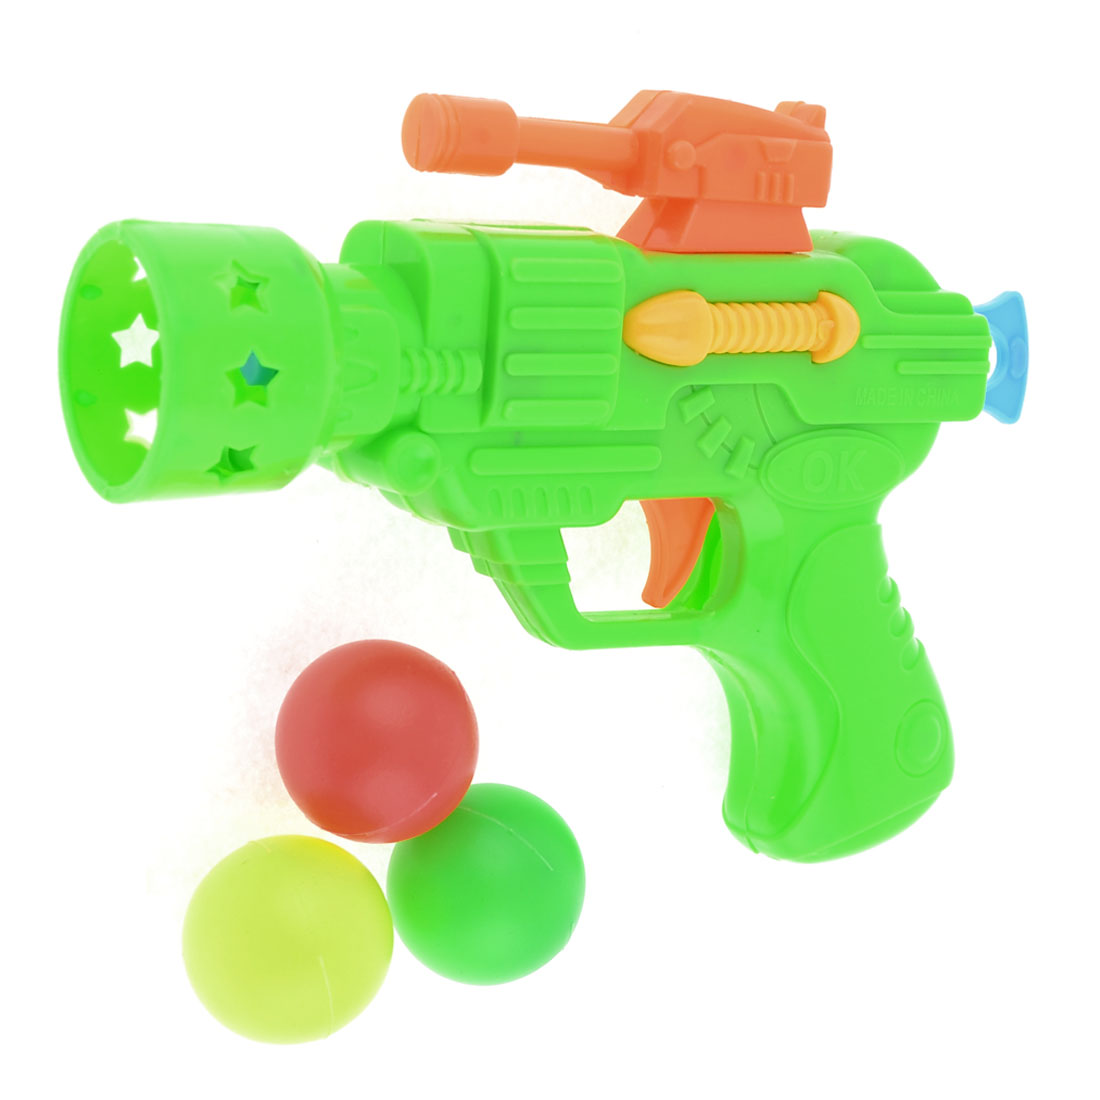 Kids Plastic Green Trigger Design Gun Fight Toy w 3Pcs Table Tennis Balls